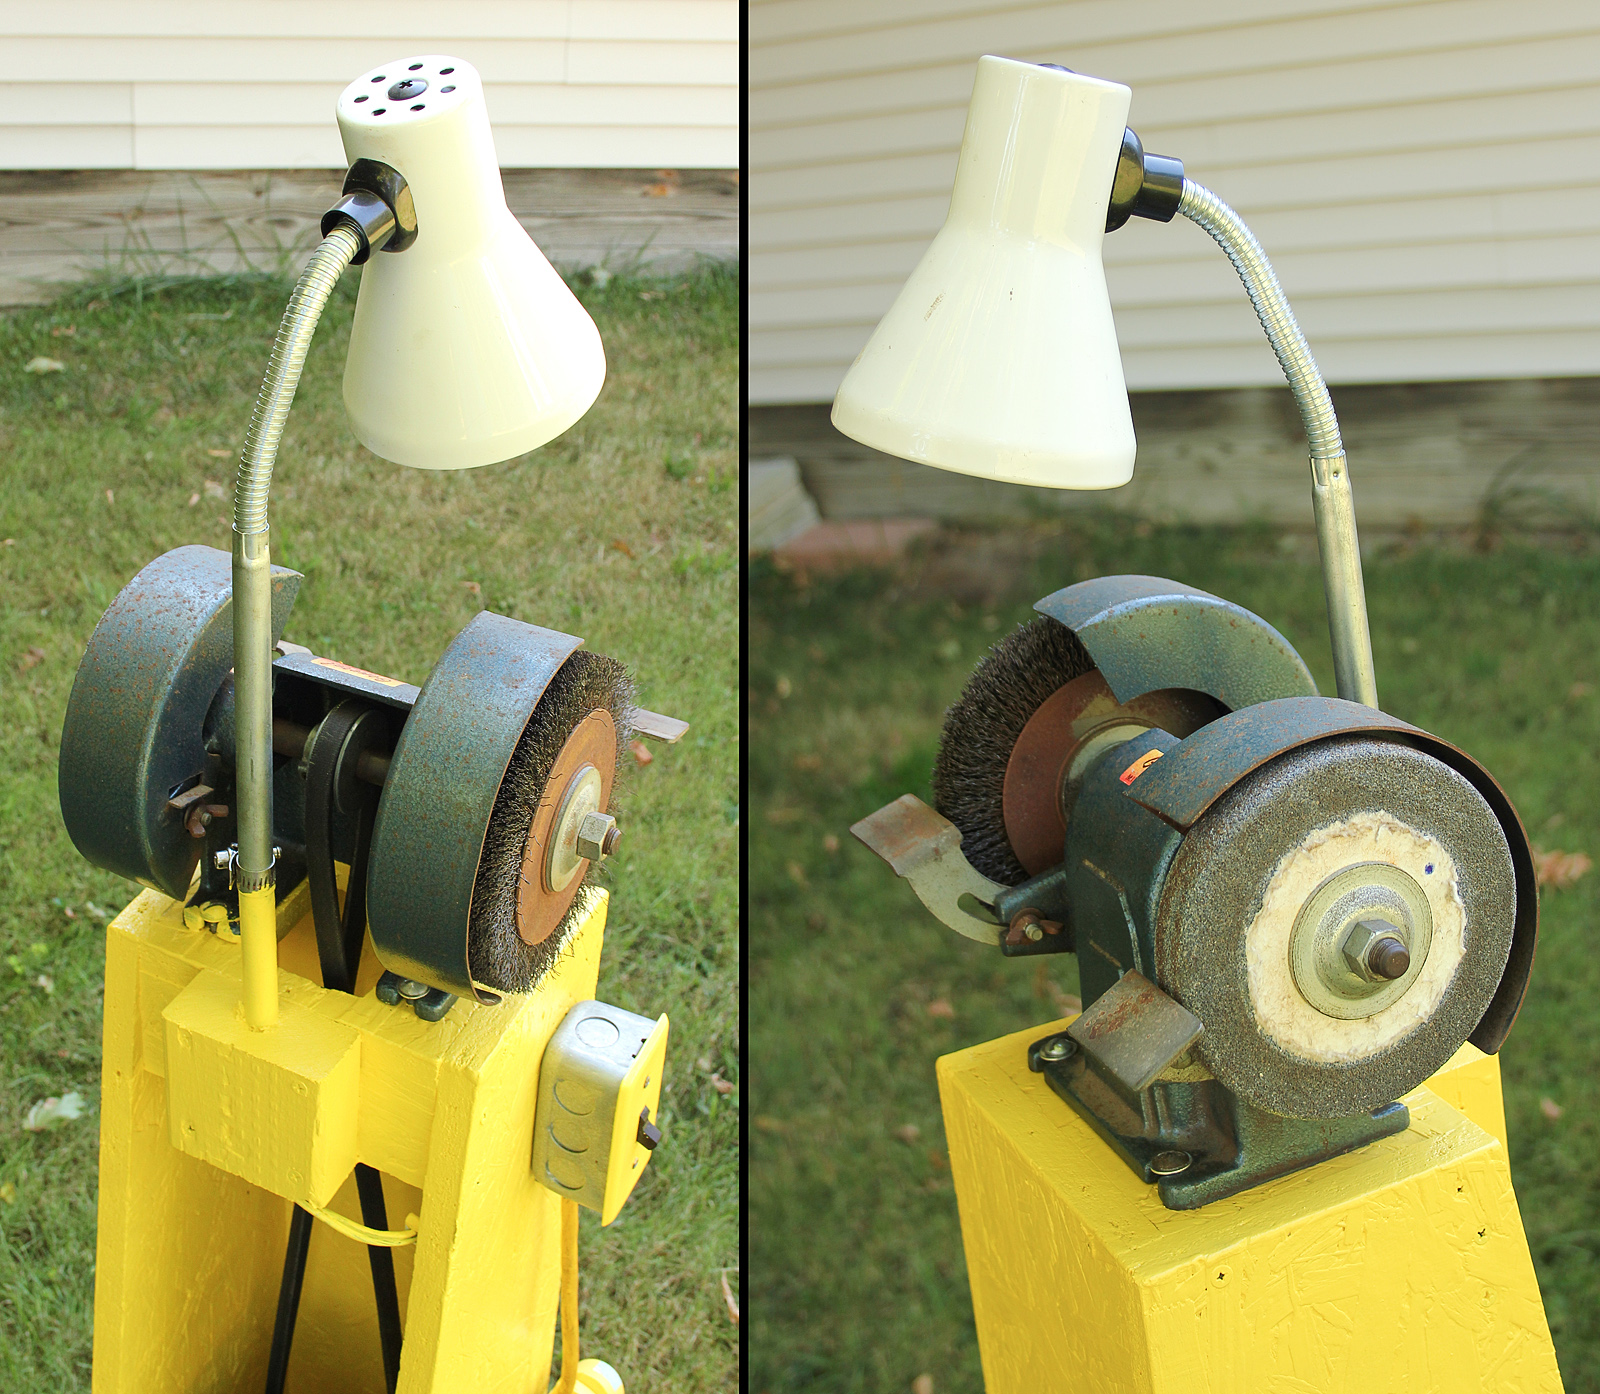 Awe Inspiring Old Fashioned Bench Grinder Stand Swvincent Com Onthecornerstone Fun Painted Chair Ideas Images Onthecornerstoneorg